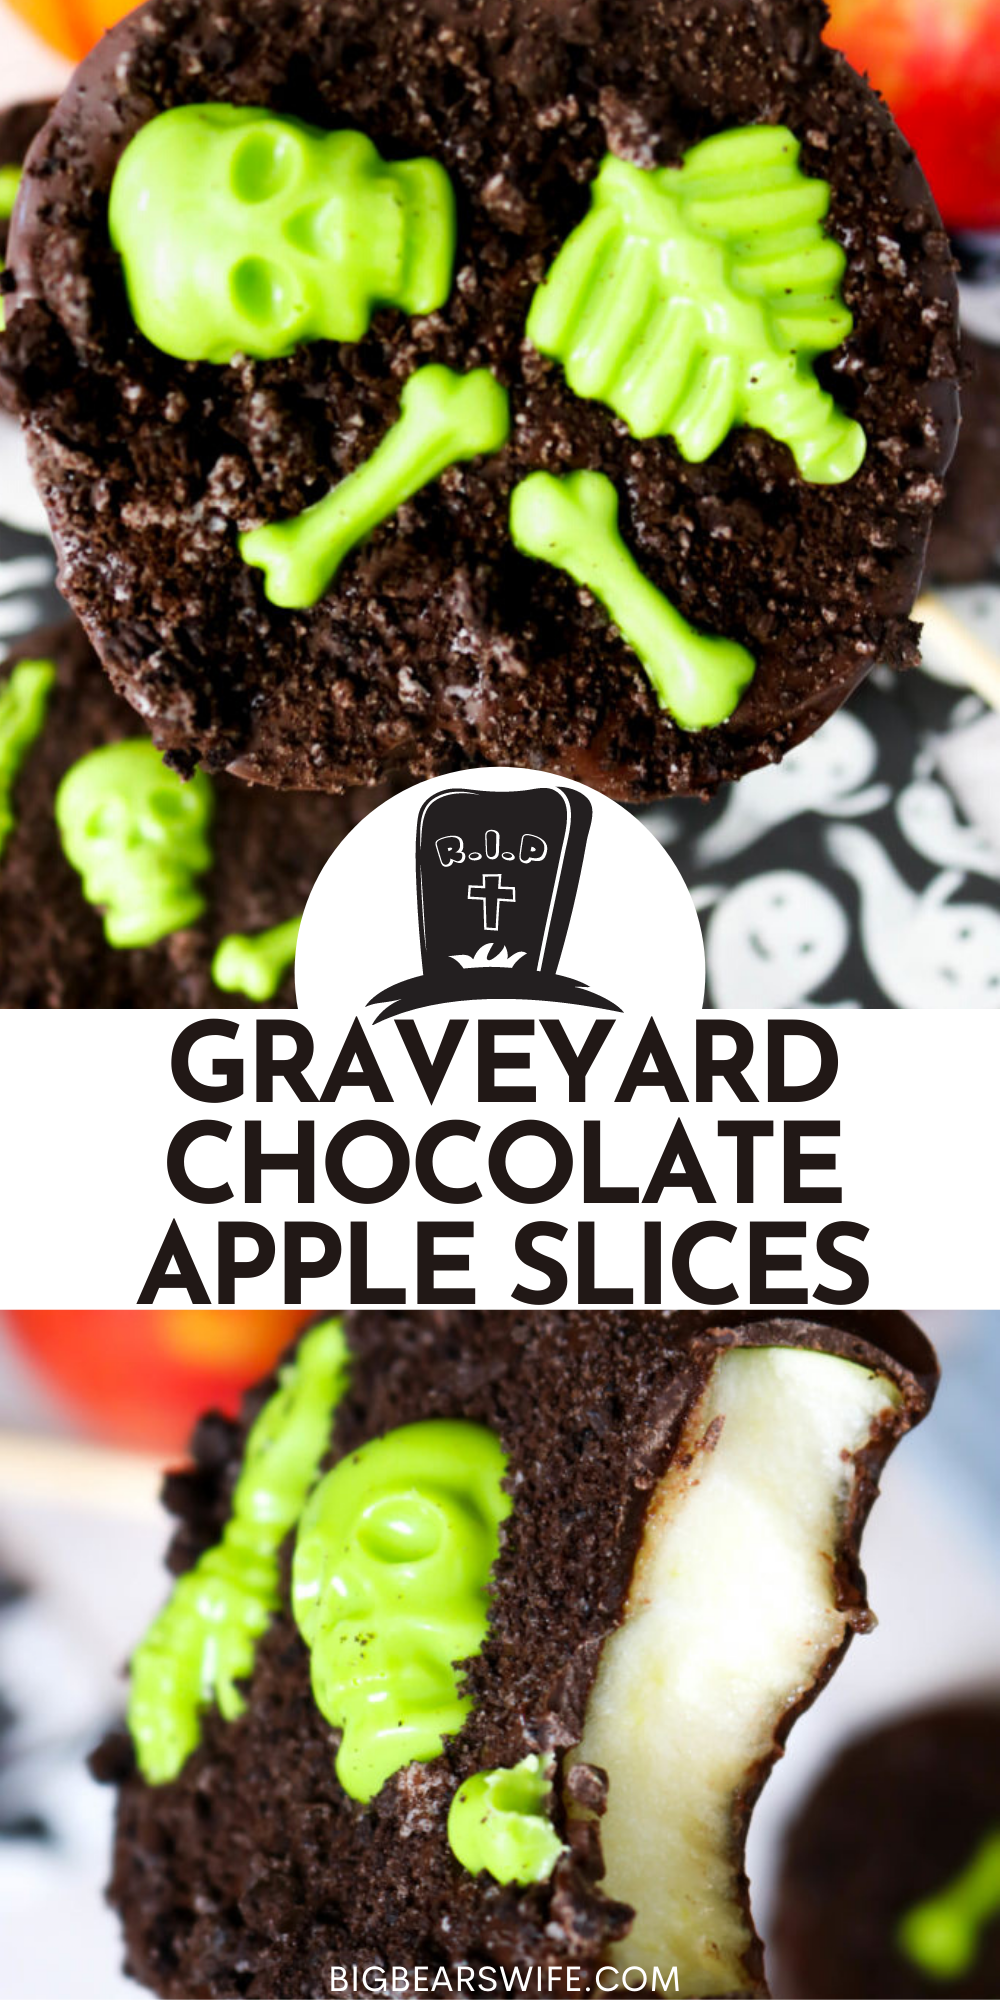 Melted chocolate and candy skeletons decorate fresh apple slices for a tasty Halloween treats that kids and adults will love!  You'll love how easy these Graveyard Chocolate Apple Slices are to make and decorate too!